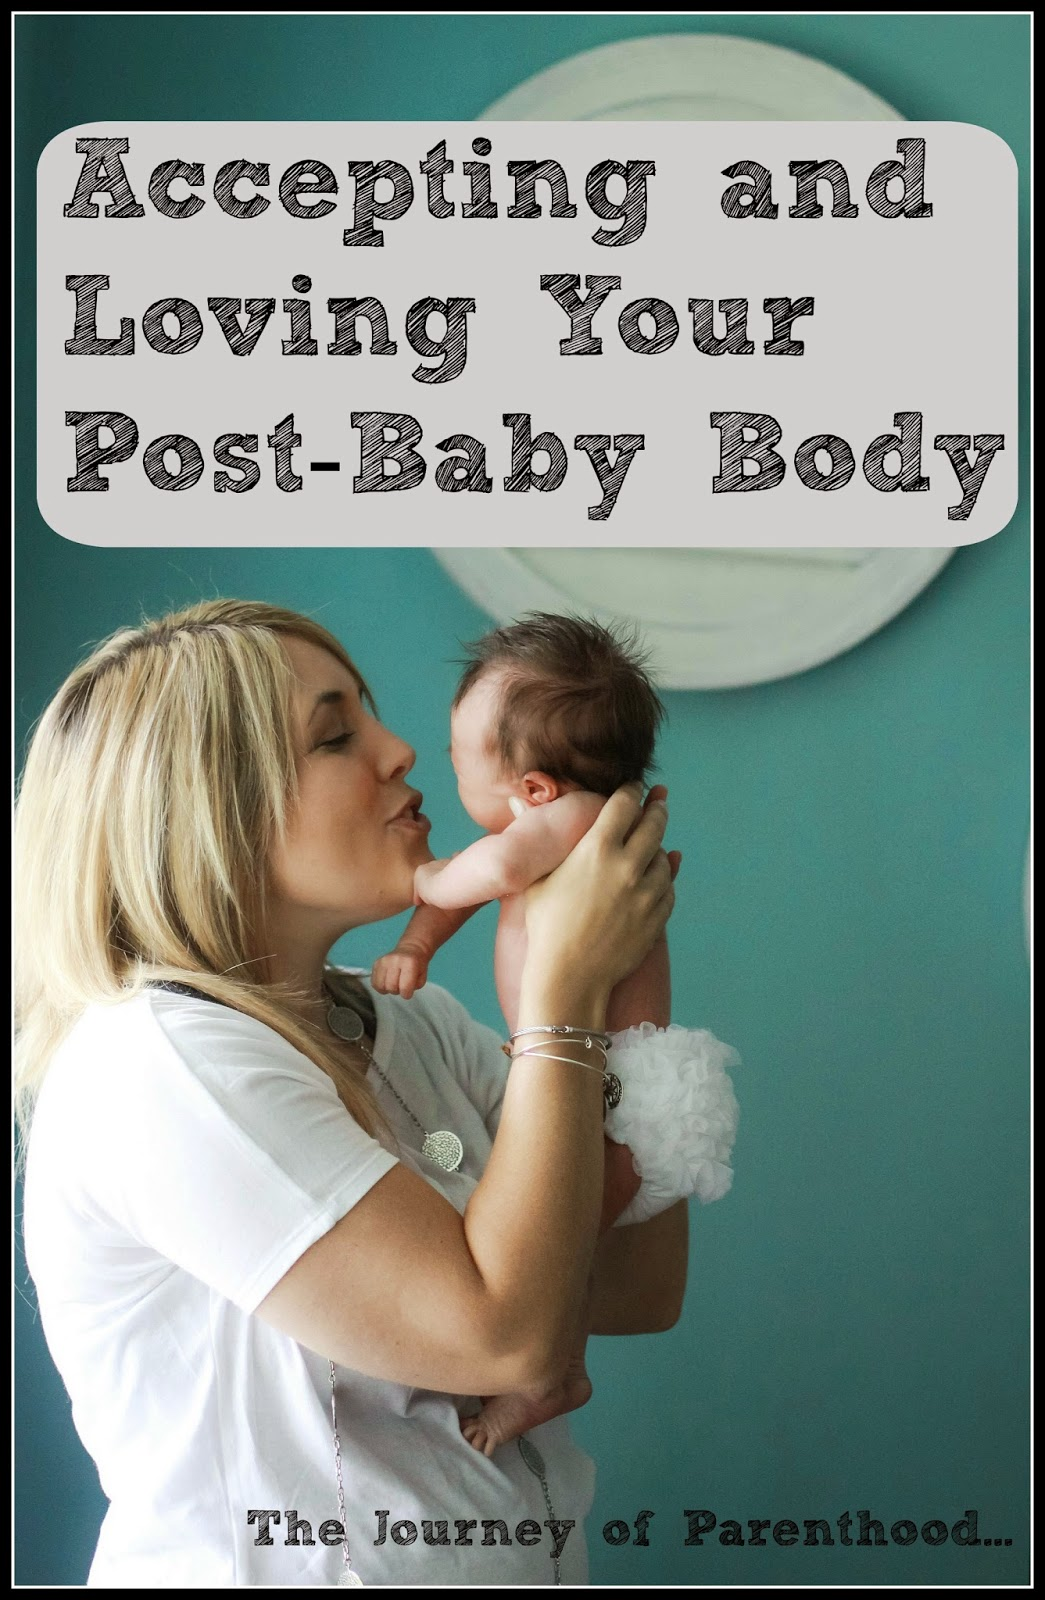 Accepting and Loving Your Post-Baby Body